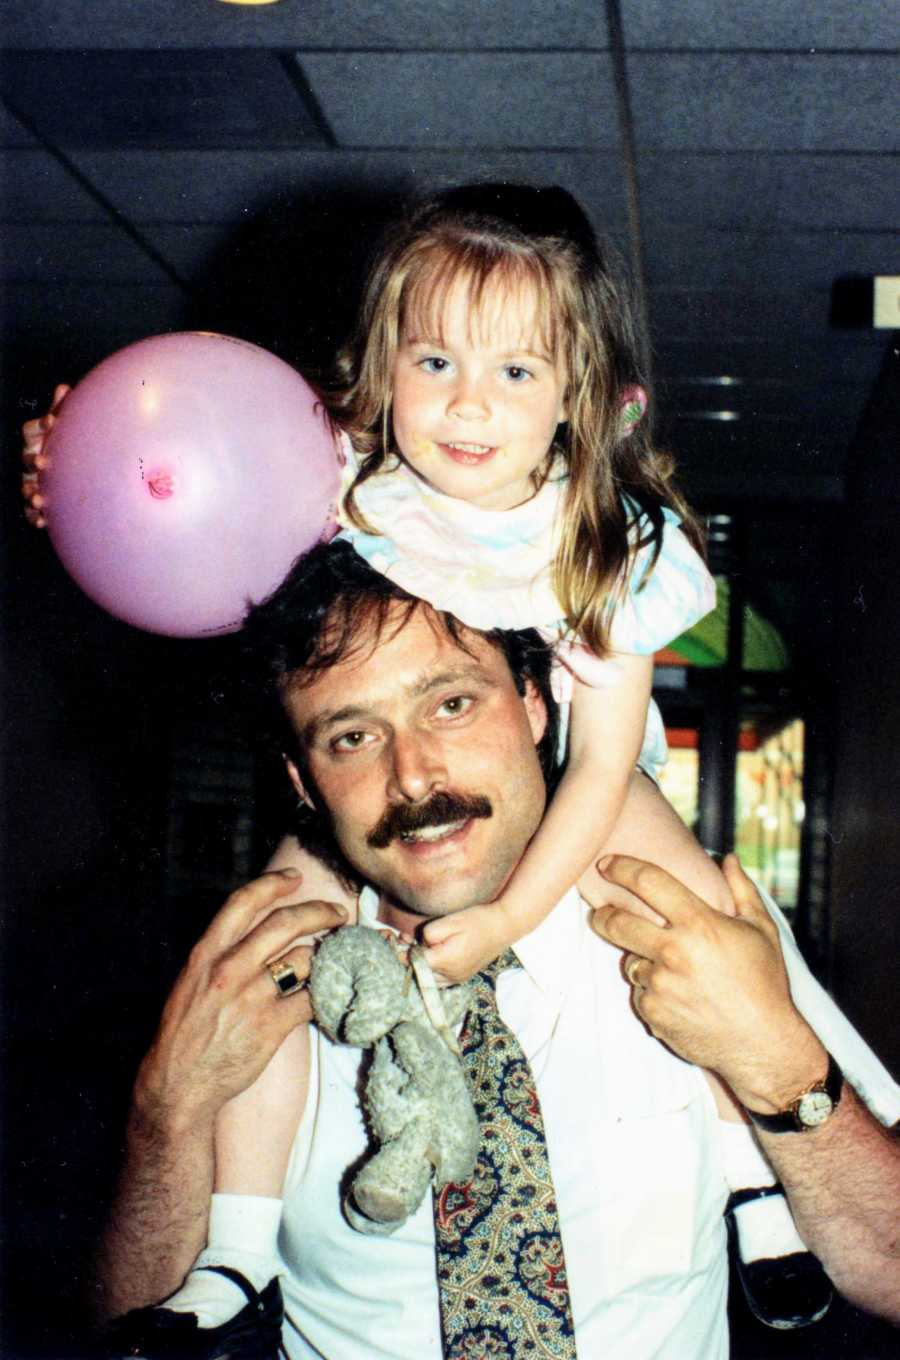 Father holding daughter on shoulders and the daughter is holding a pink balloon